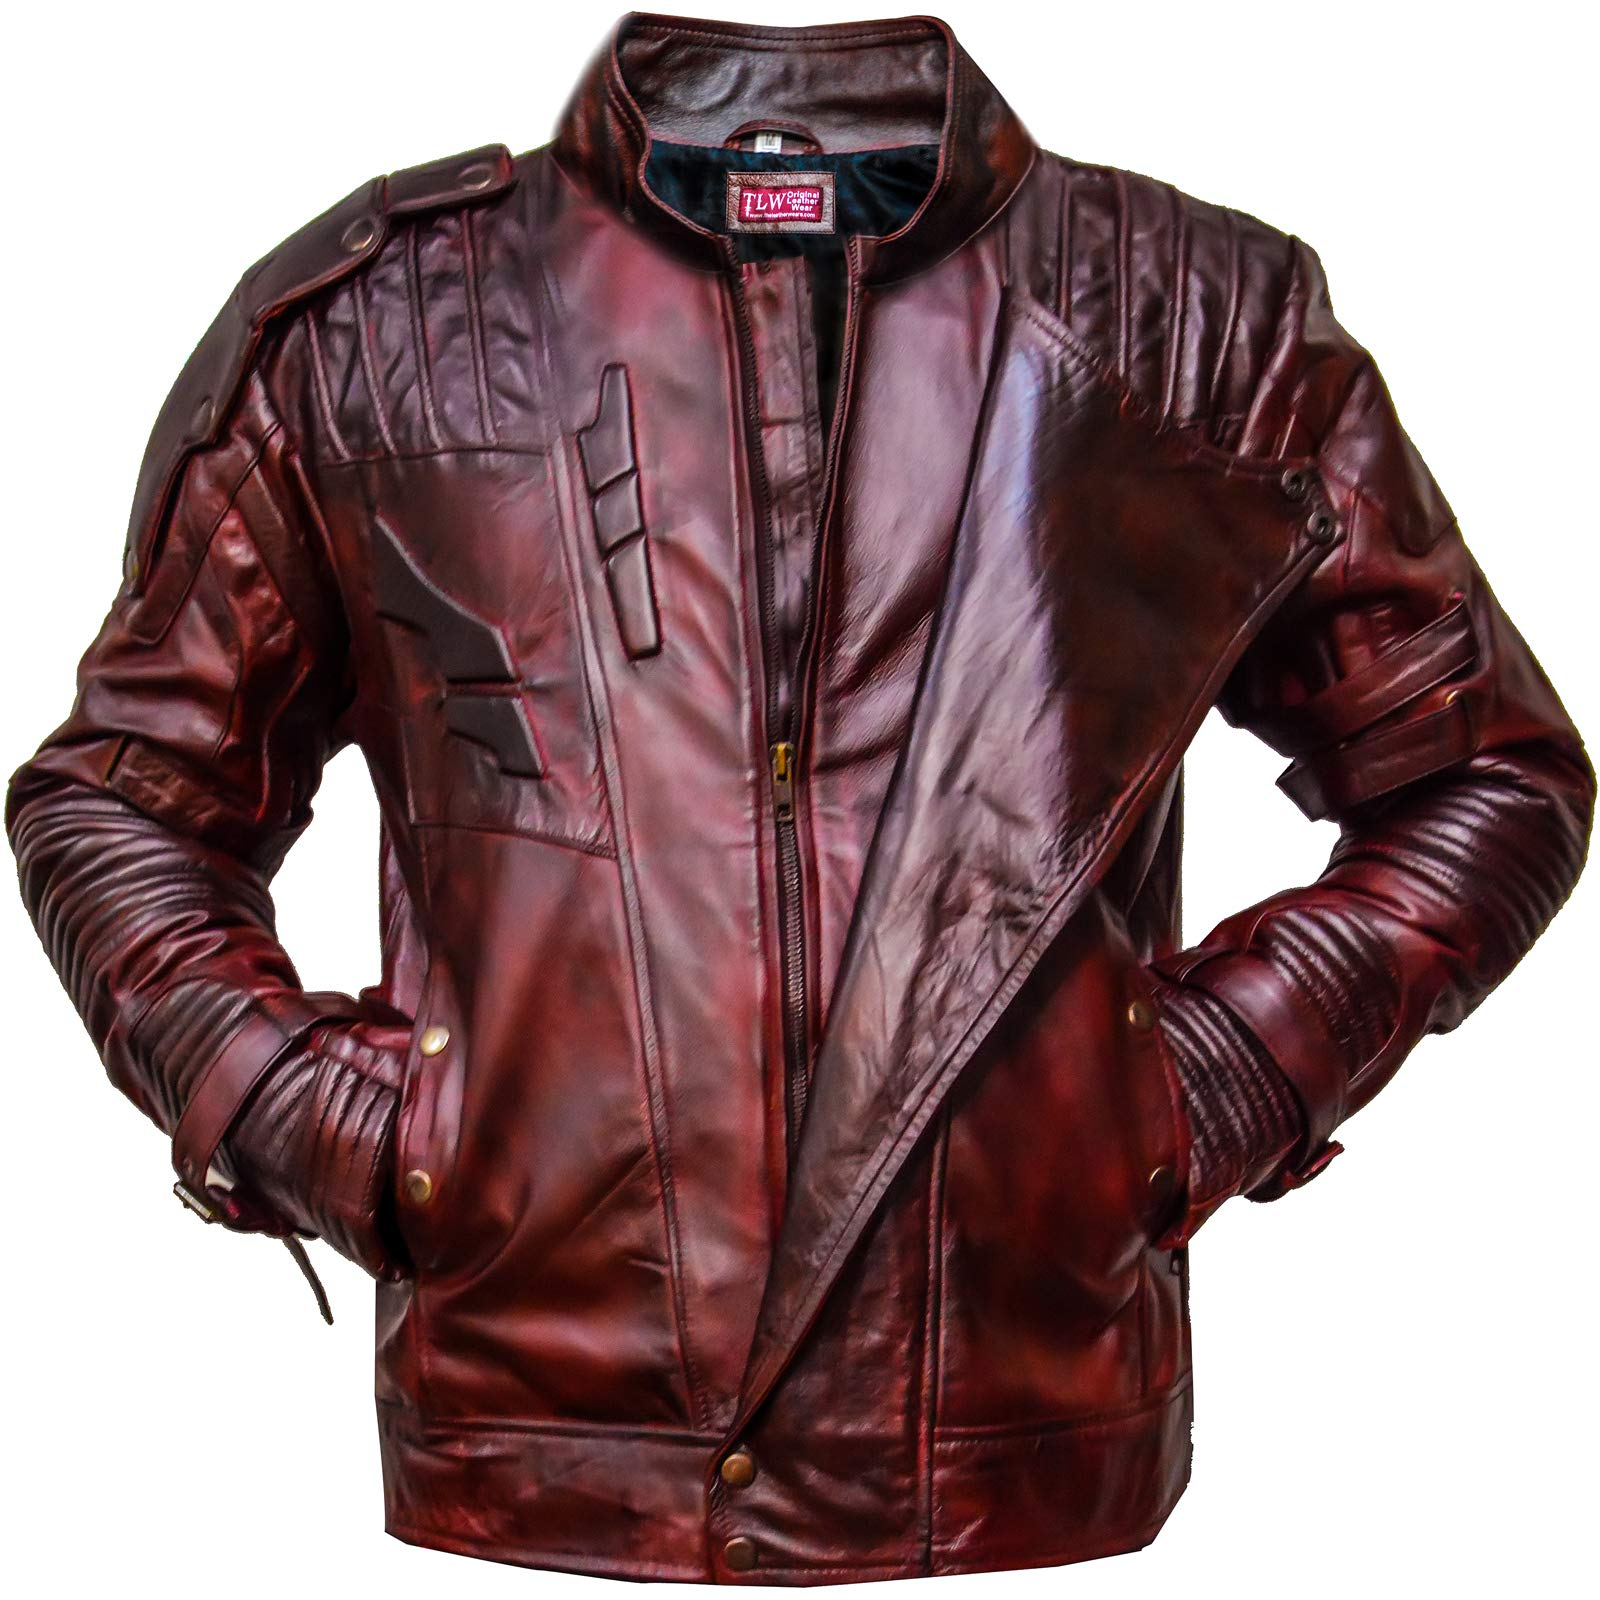 Galaxy 2 Star-Lord Guardians of The Galaxy Leather Jacket, Faux, Maroon - S by Dizller